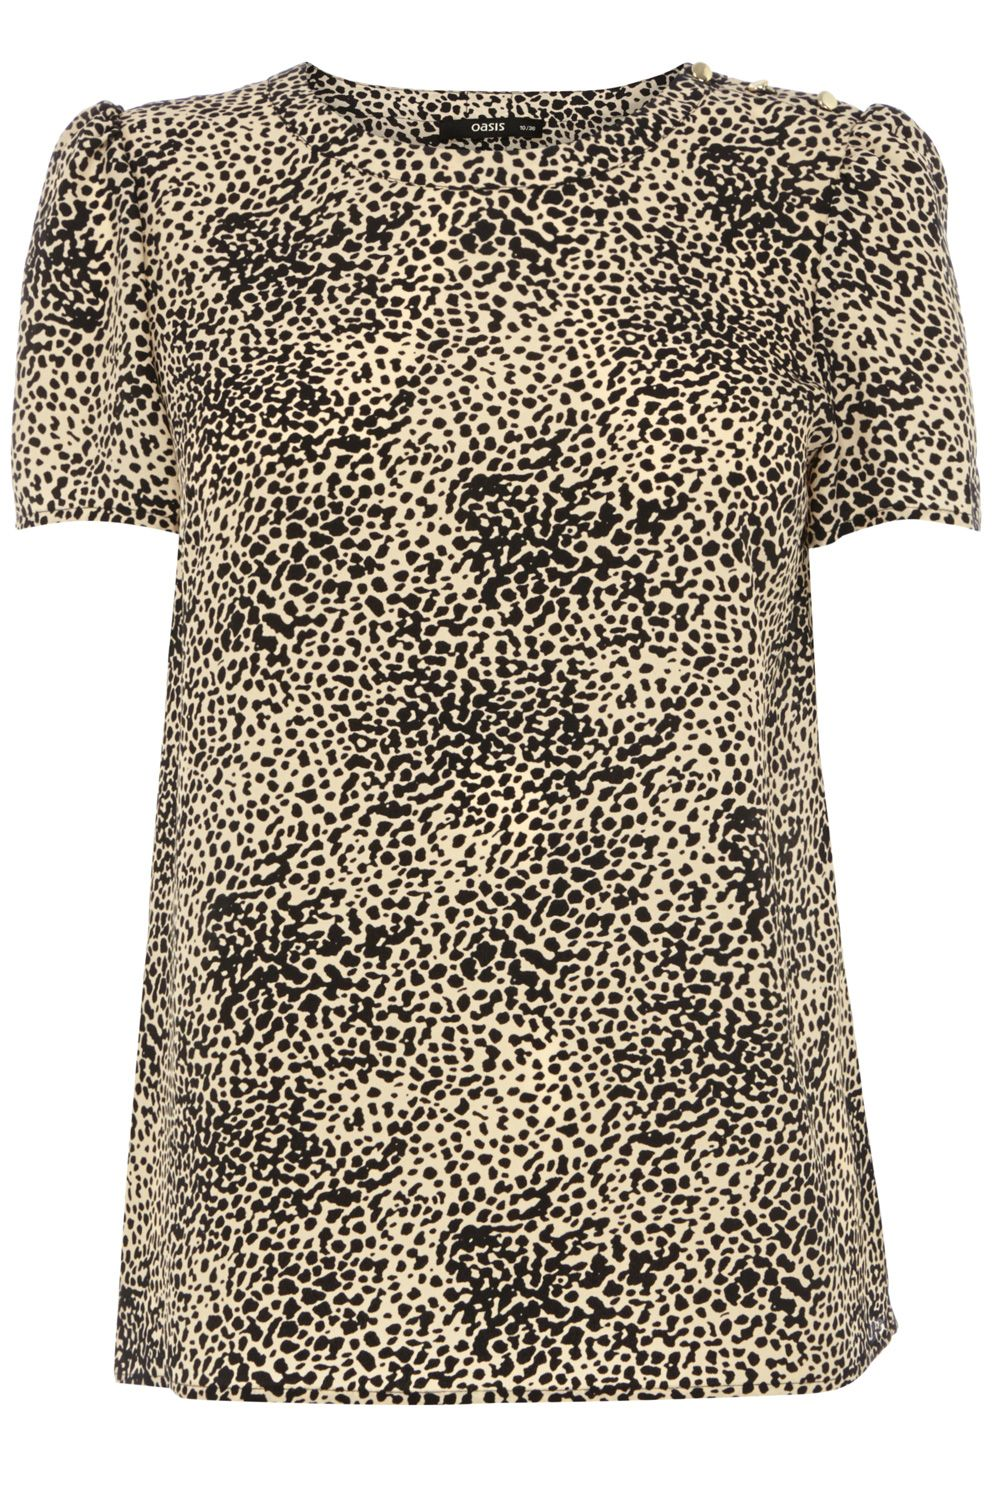 Pricepoint leopard top